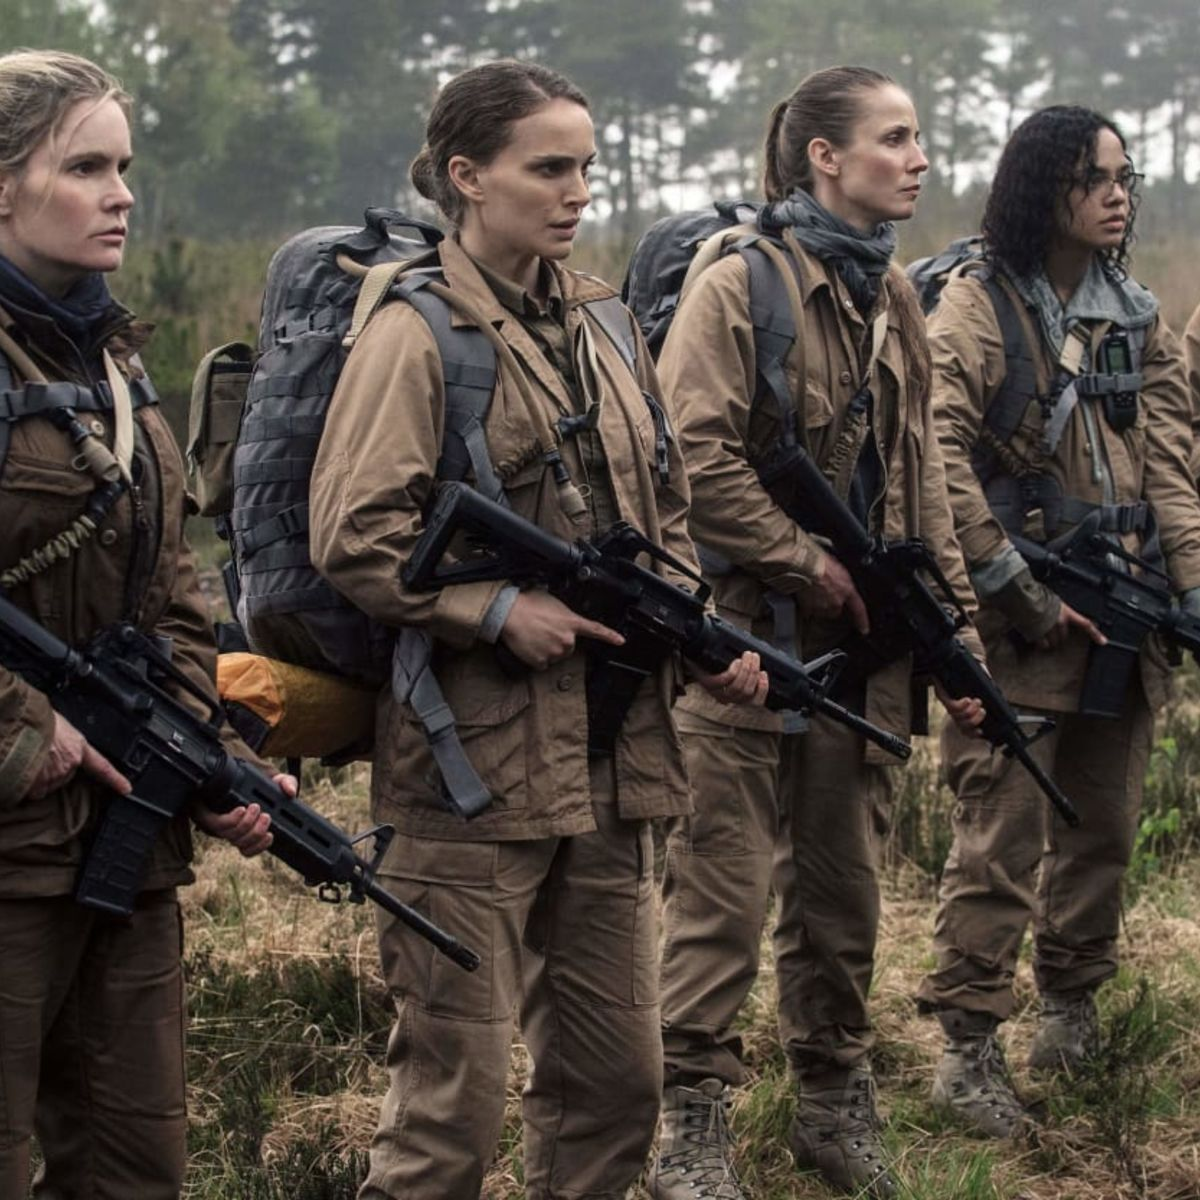 Annihilation cast